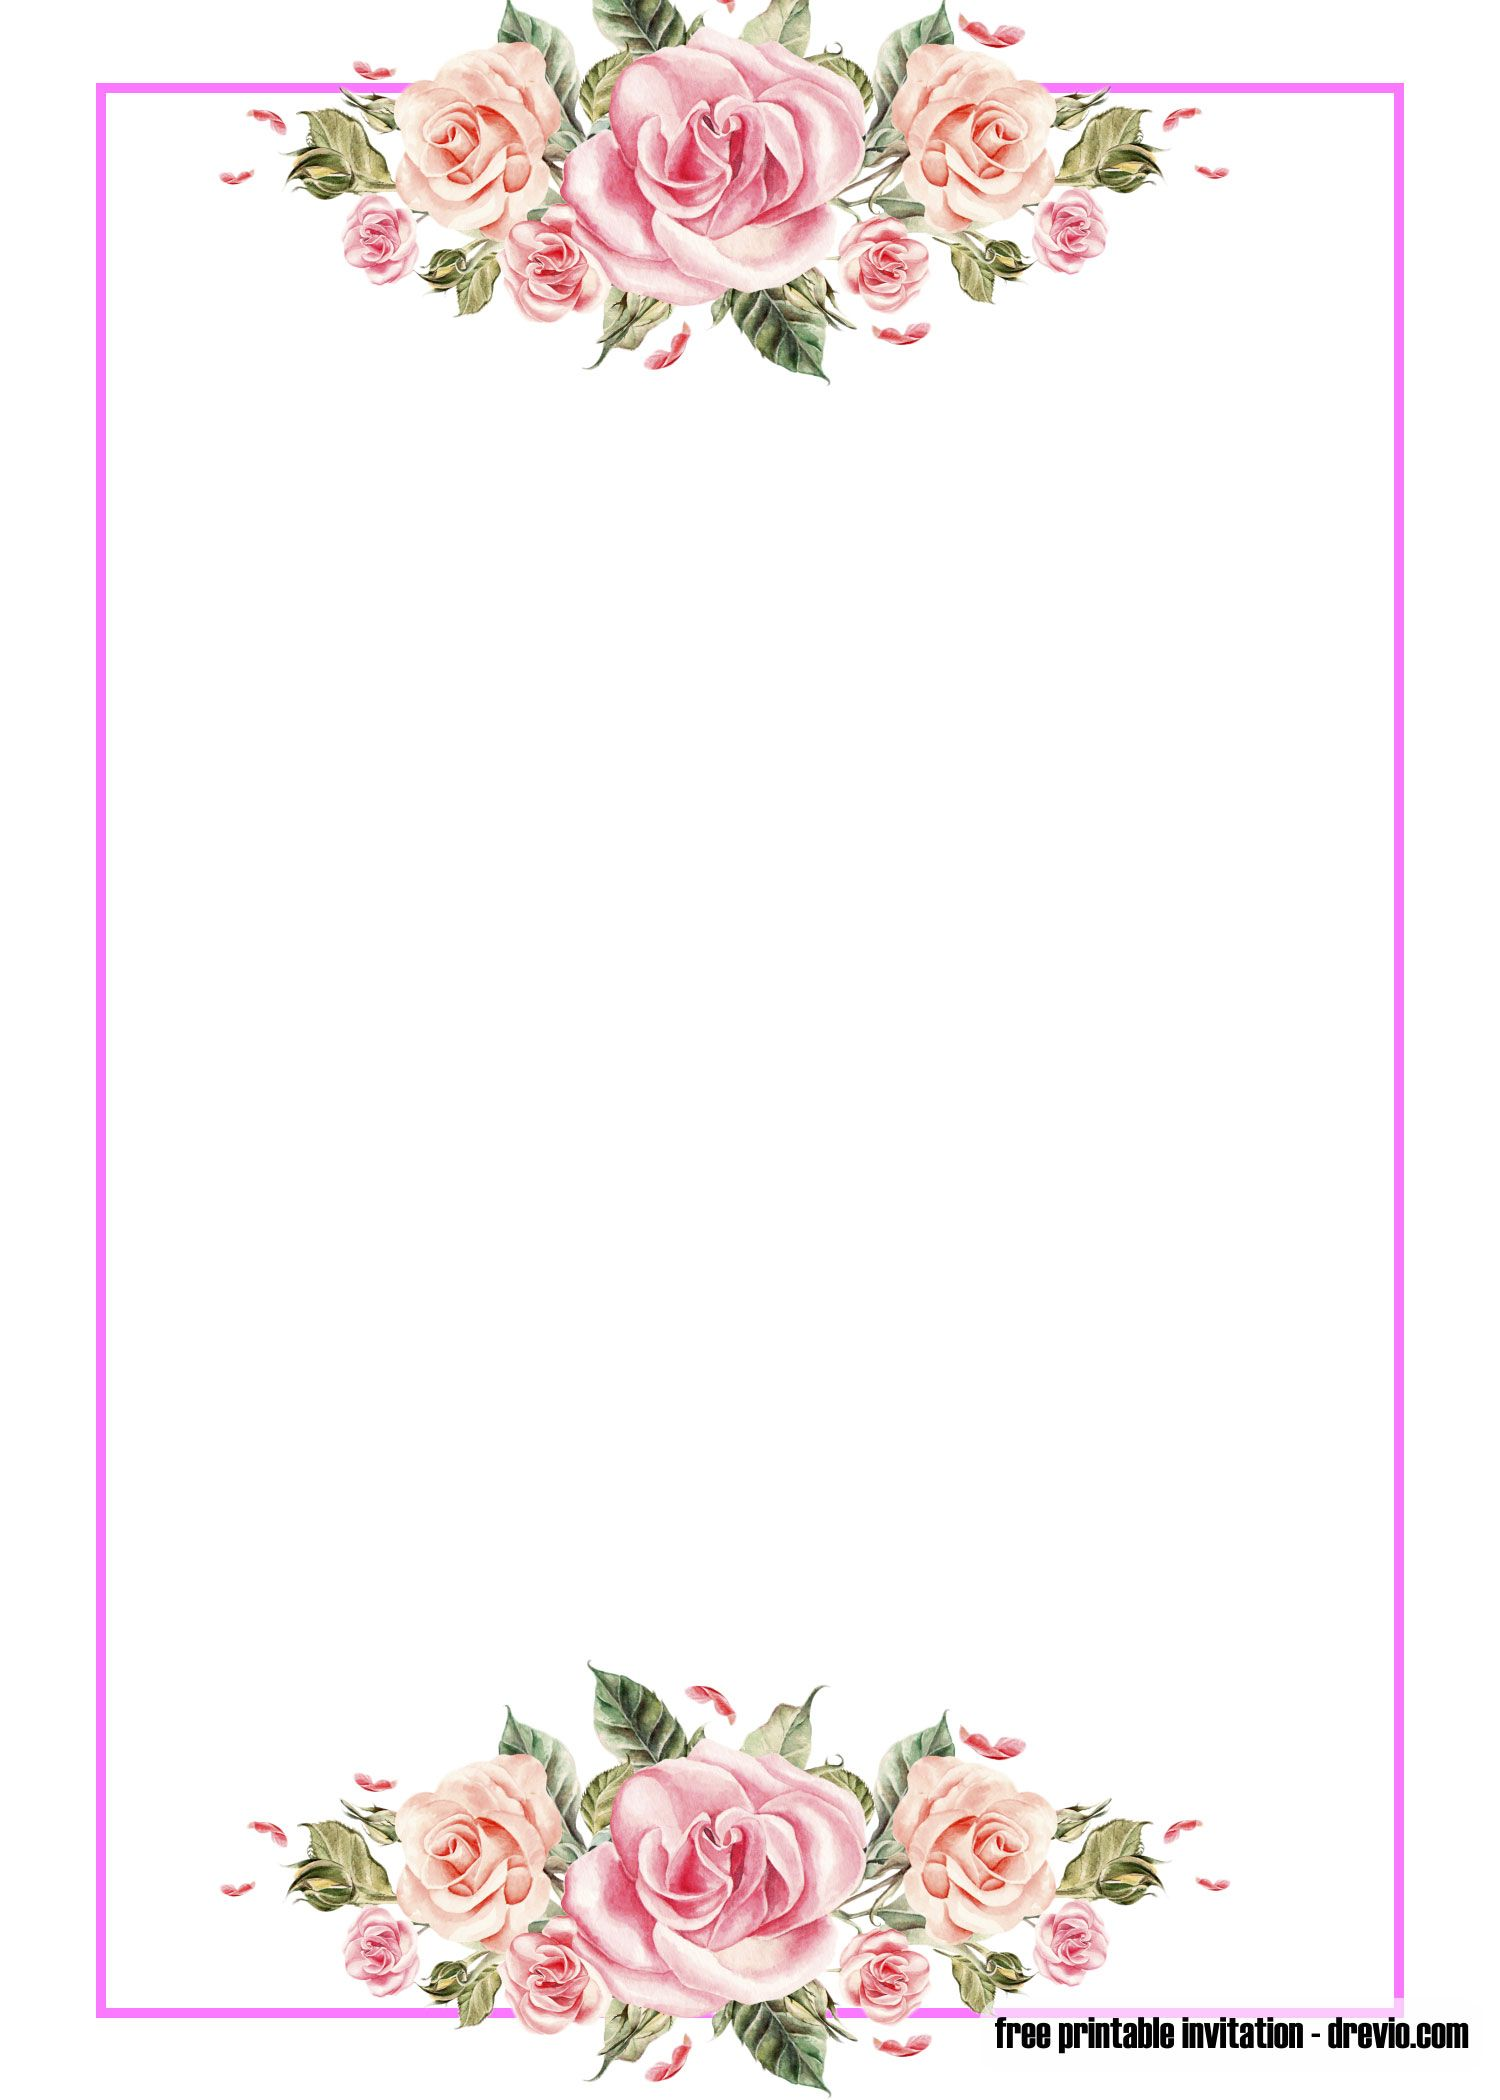 FREE Pink Floral Invitation Templates (With images) Floral invitations template Floral